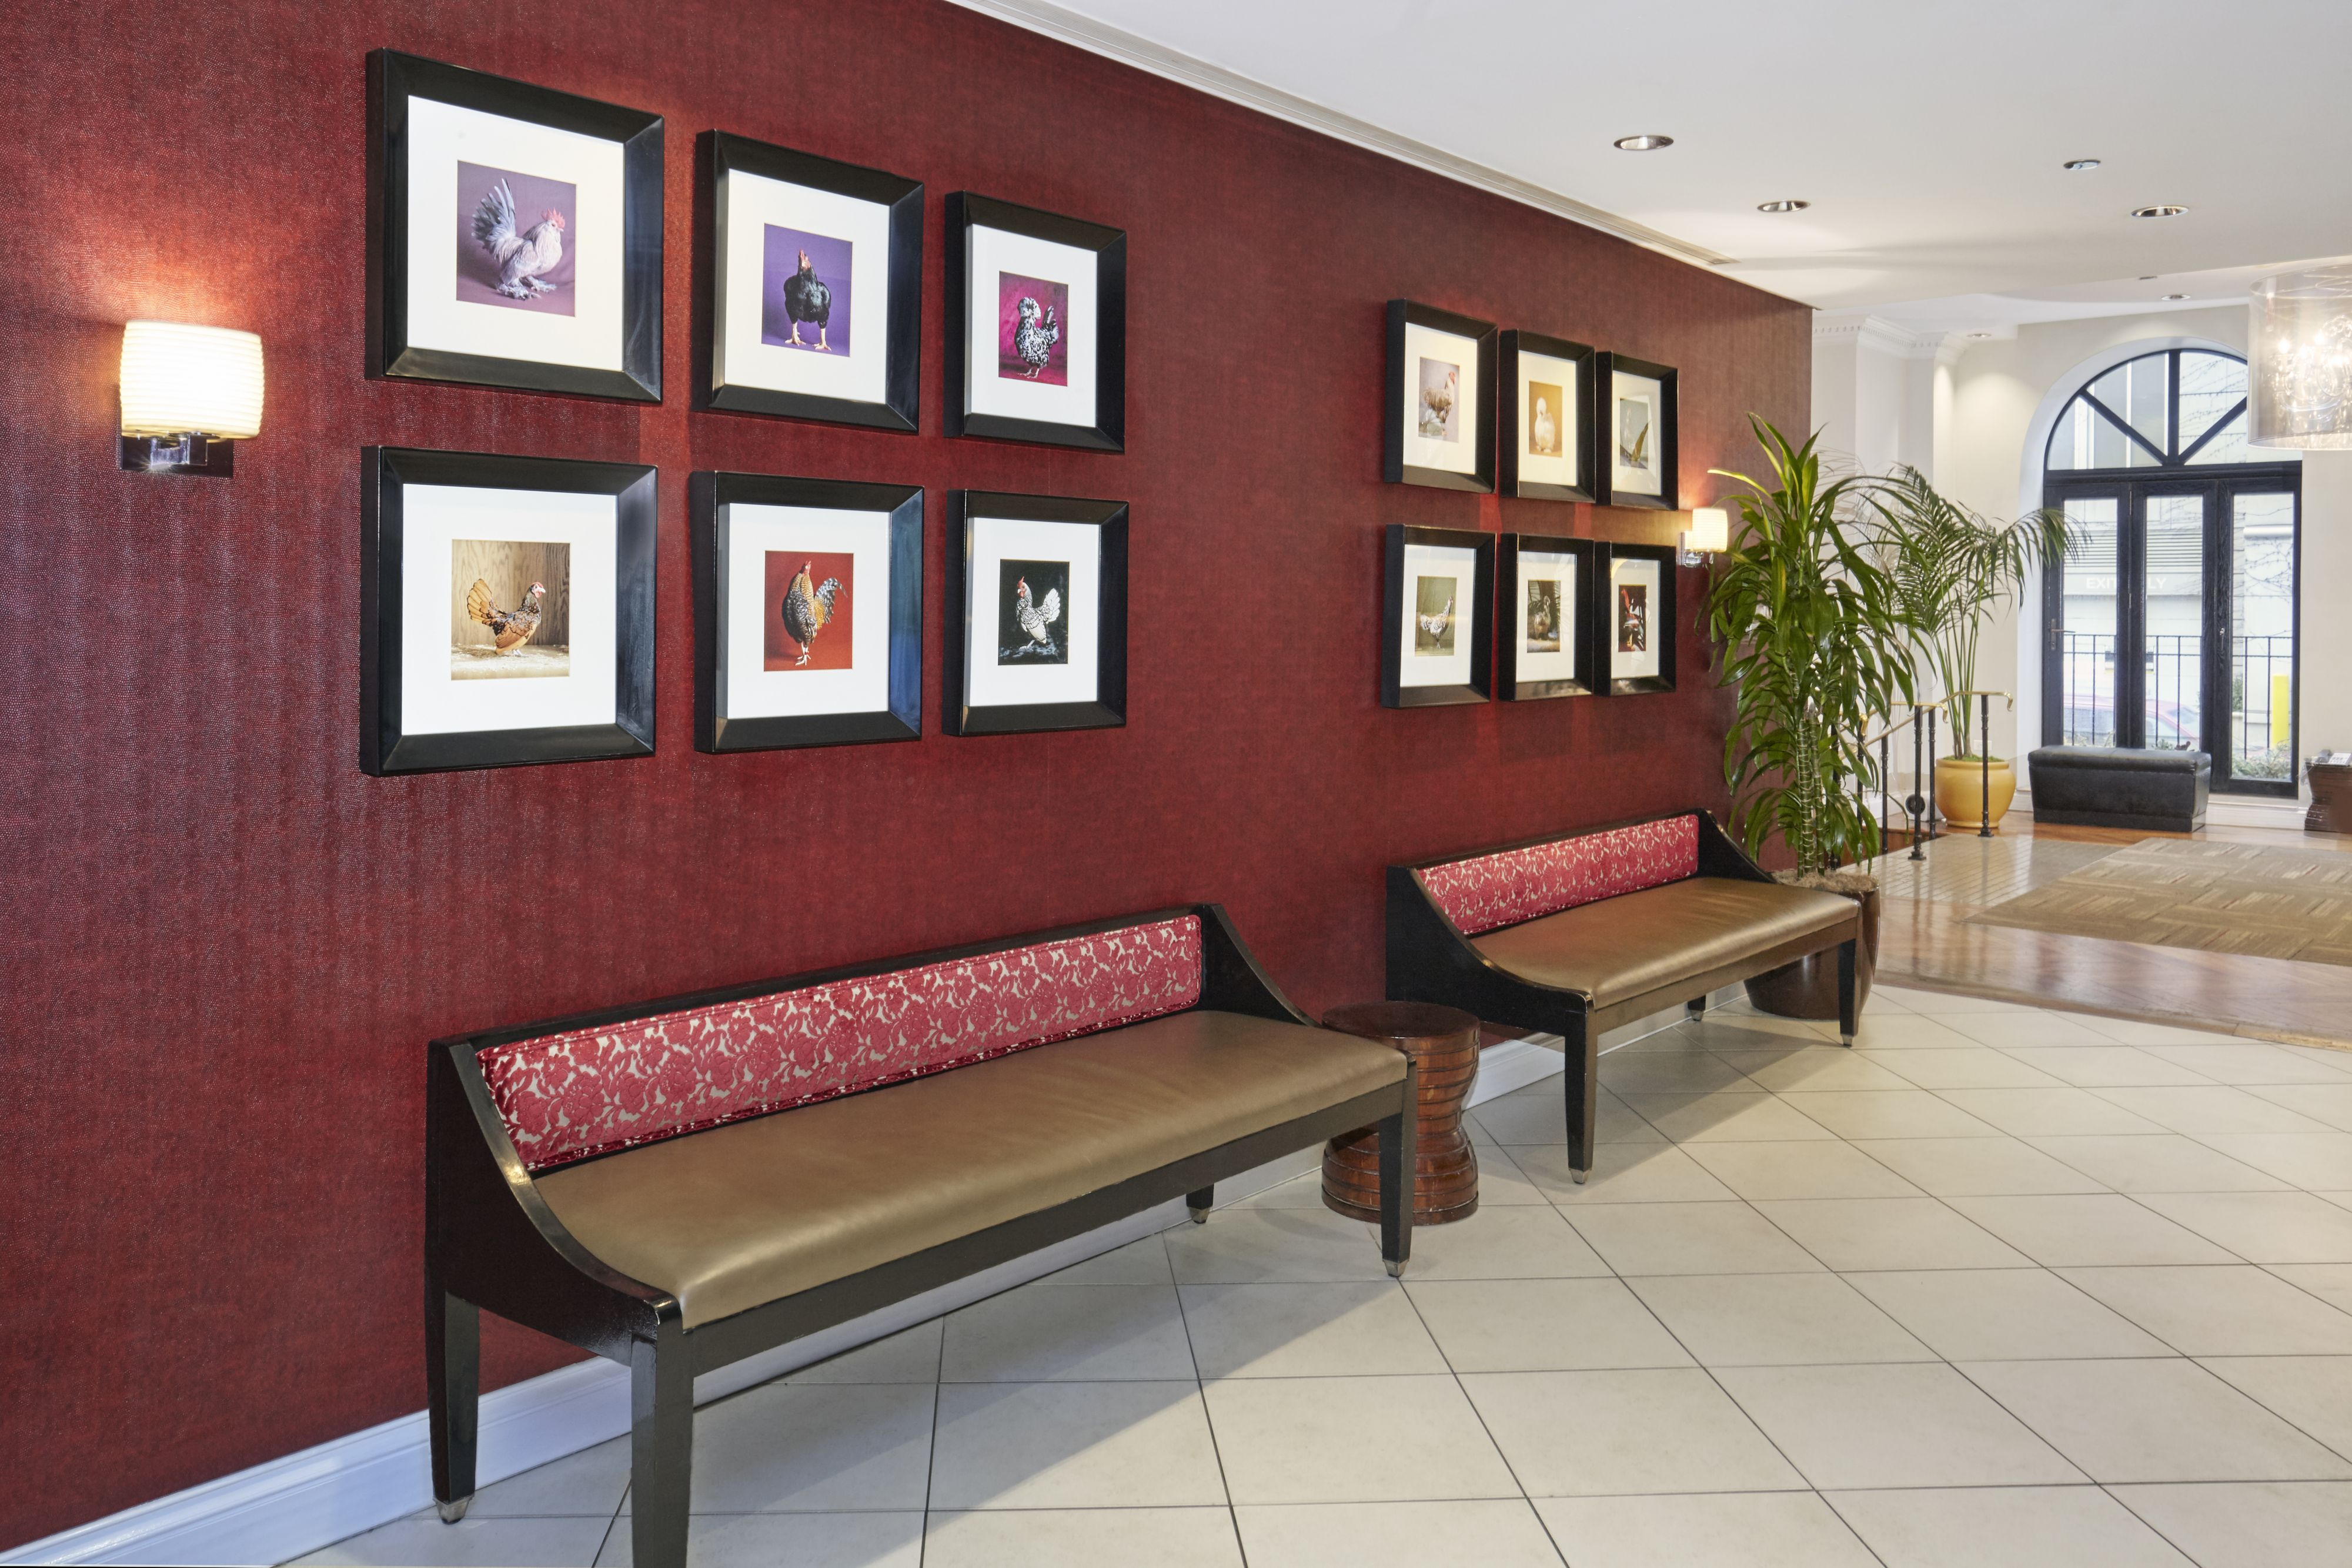 Holiday Inn Express Chicago - Magnificent Mile image 6